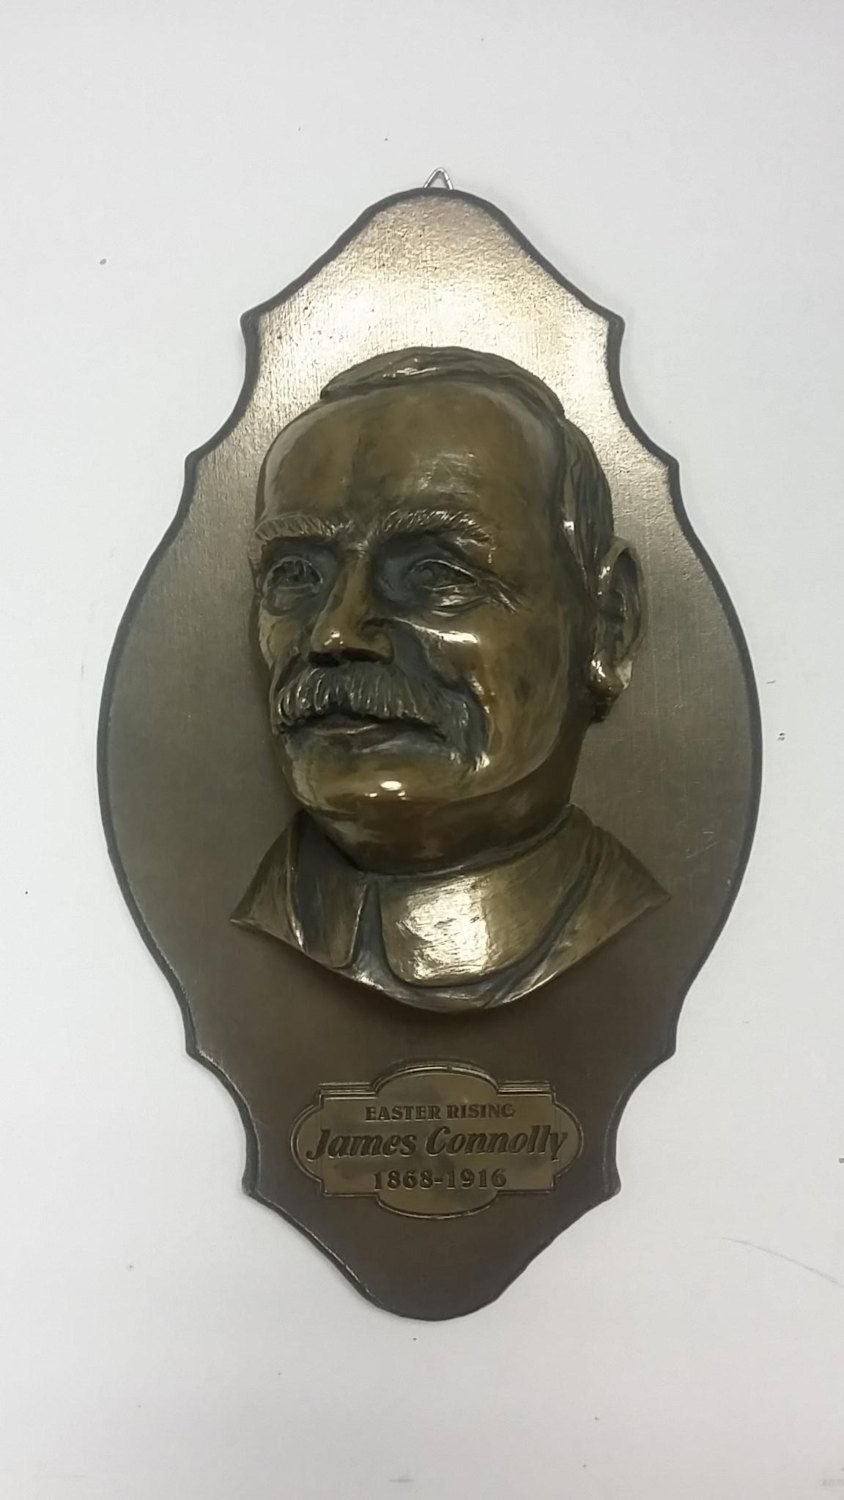 James connolly 1916 easter rising centenary commemoration plaque james connolly 1916 easter rising centenary commemoration plaque bronze finished plaque that is handmade in ireland negle Image collections